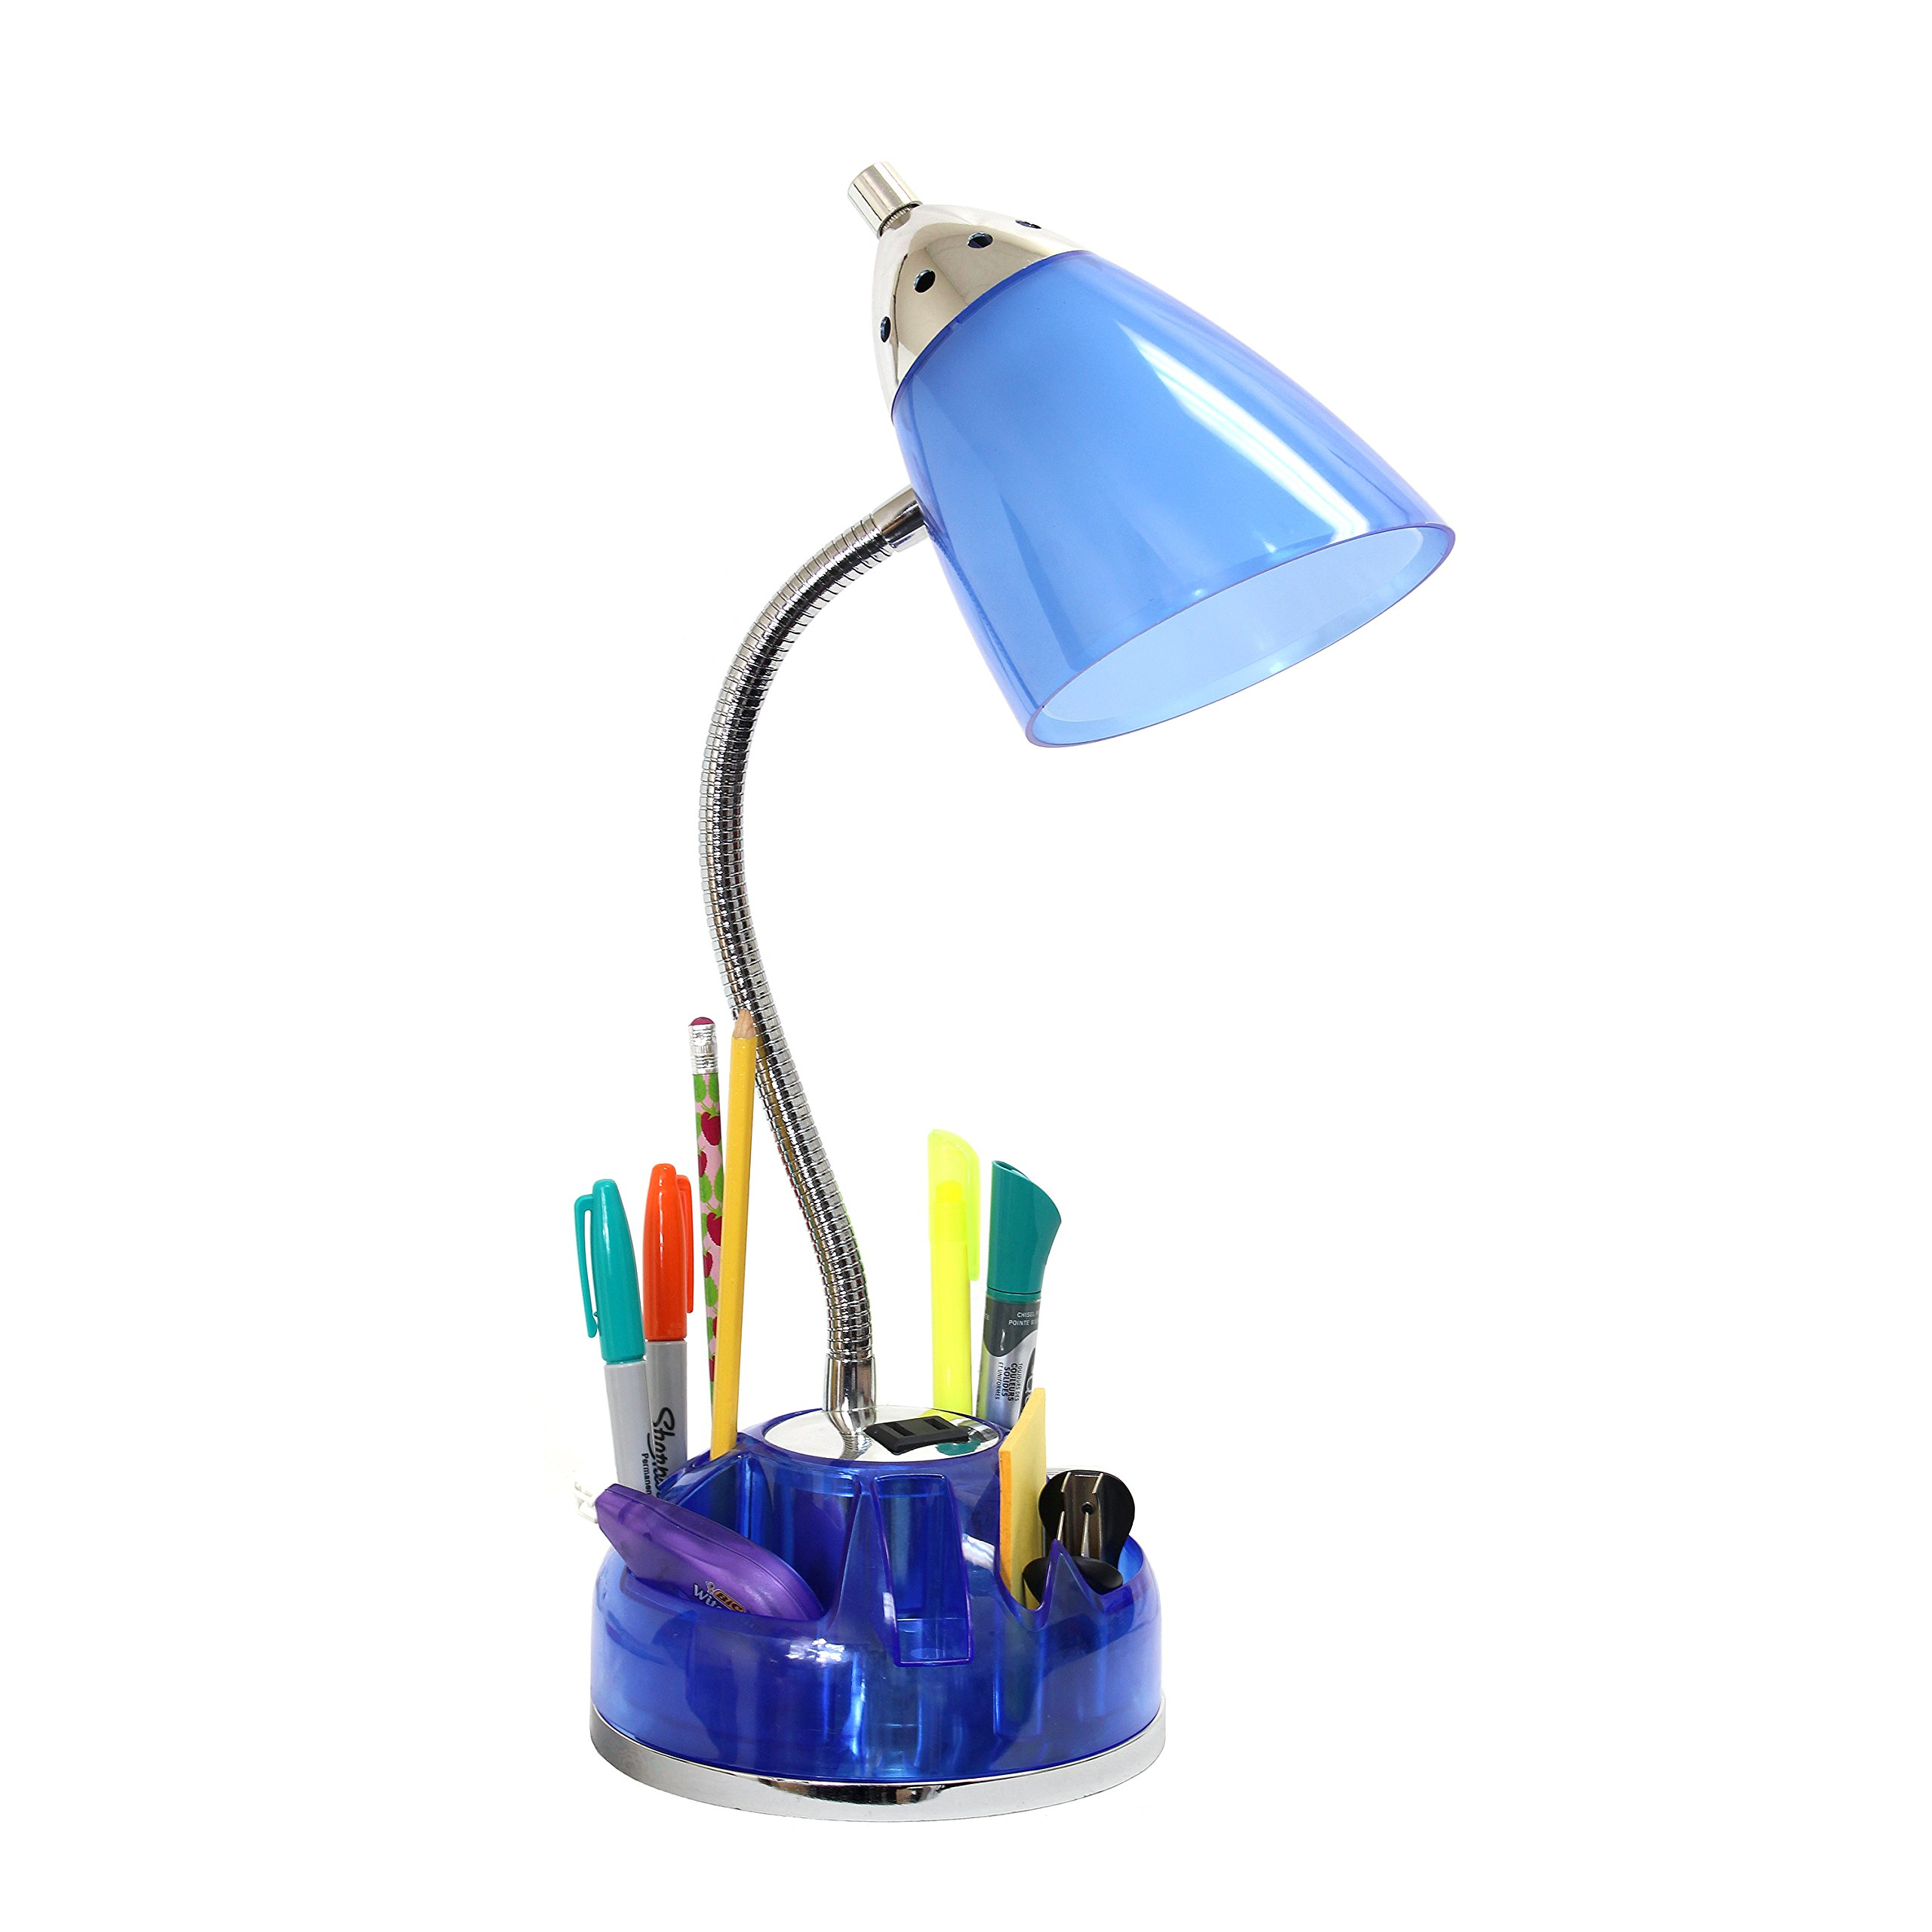 Limelights LD1015-CBL Organizer Desk Lamp with Charging Outlet Lazy Susan Base, Clear Blue by Limelights (Image #3)